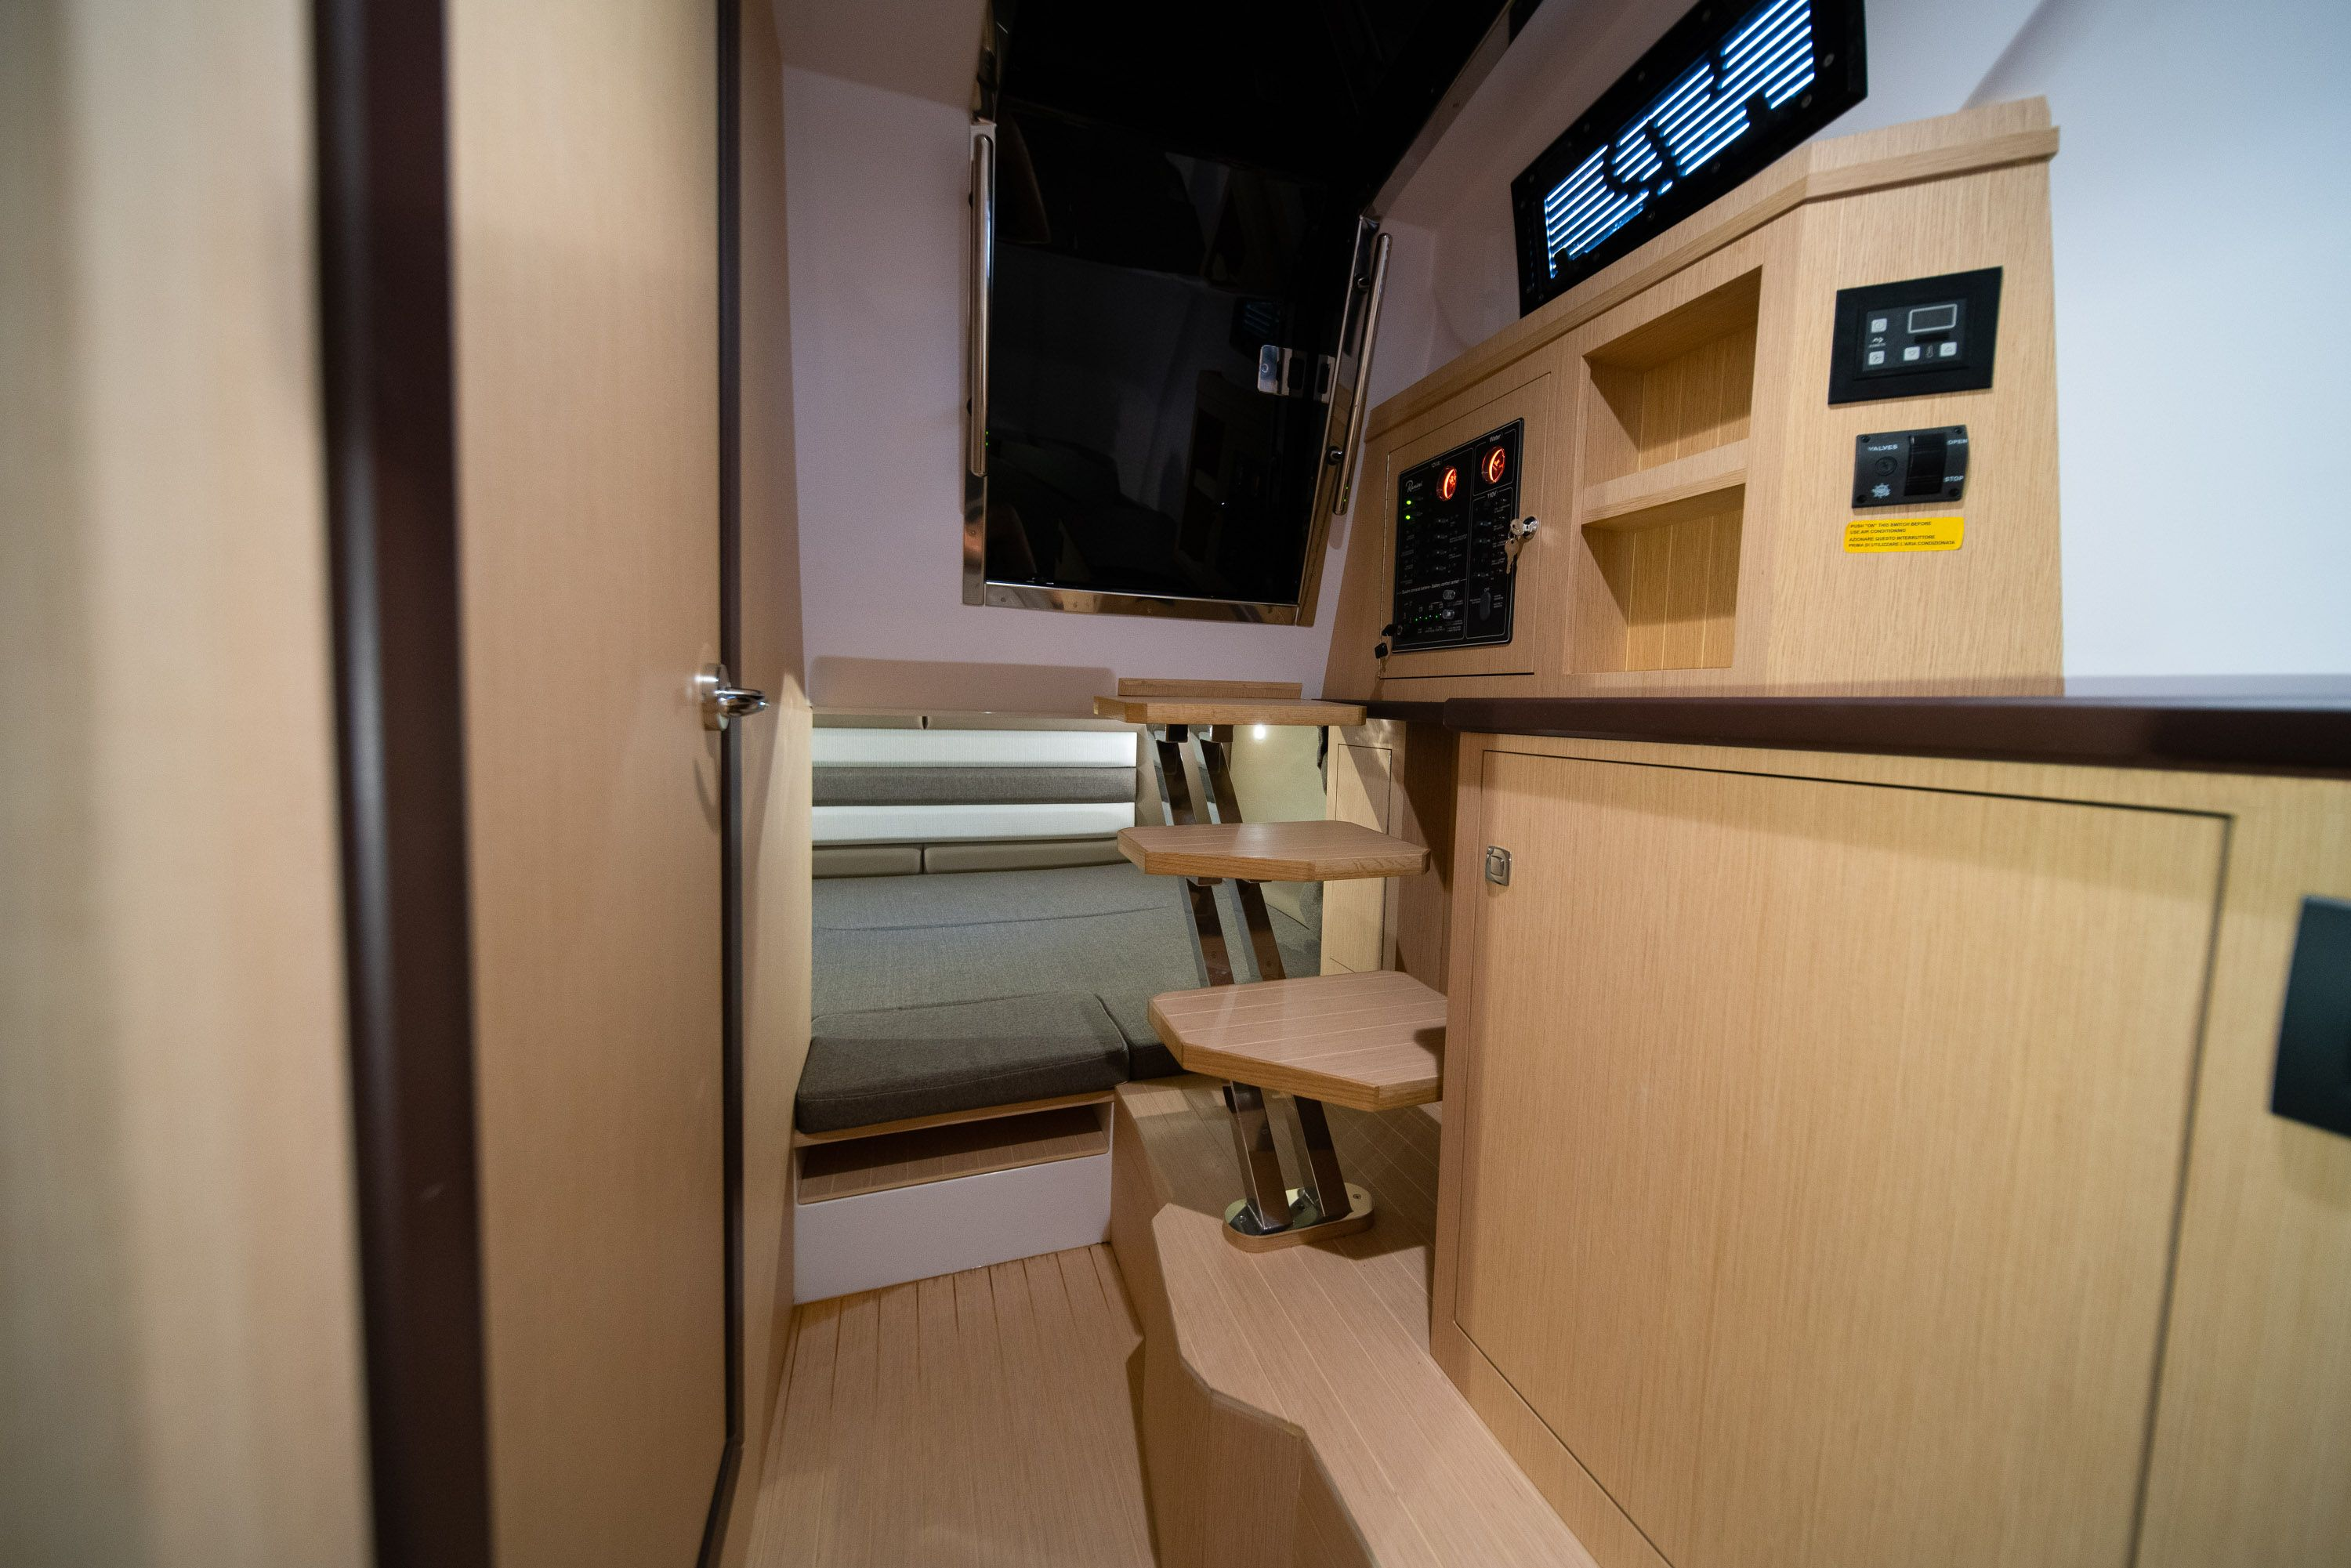 Thumbnail 38 for New 2019 Ranieri Cayman 38 Executive boat for sale in West Palm Beach, FL